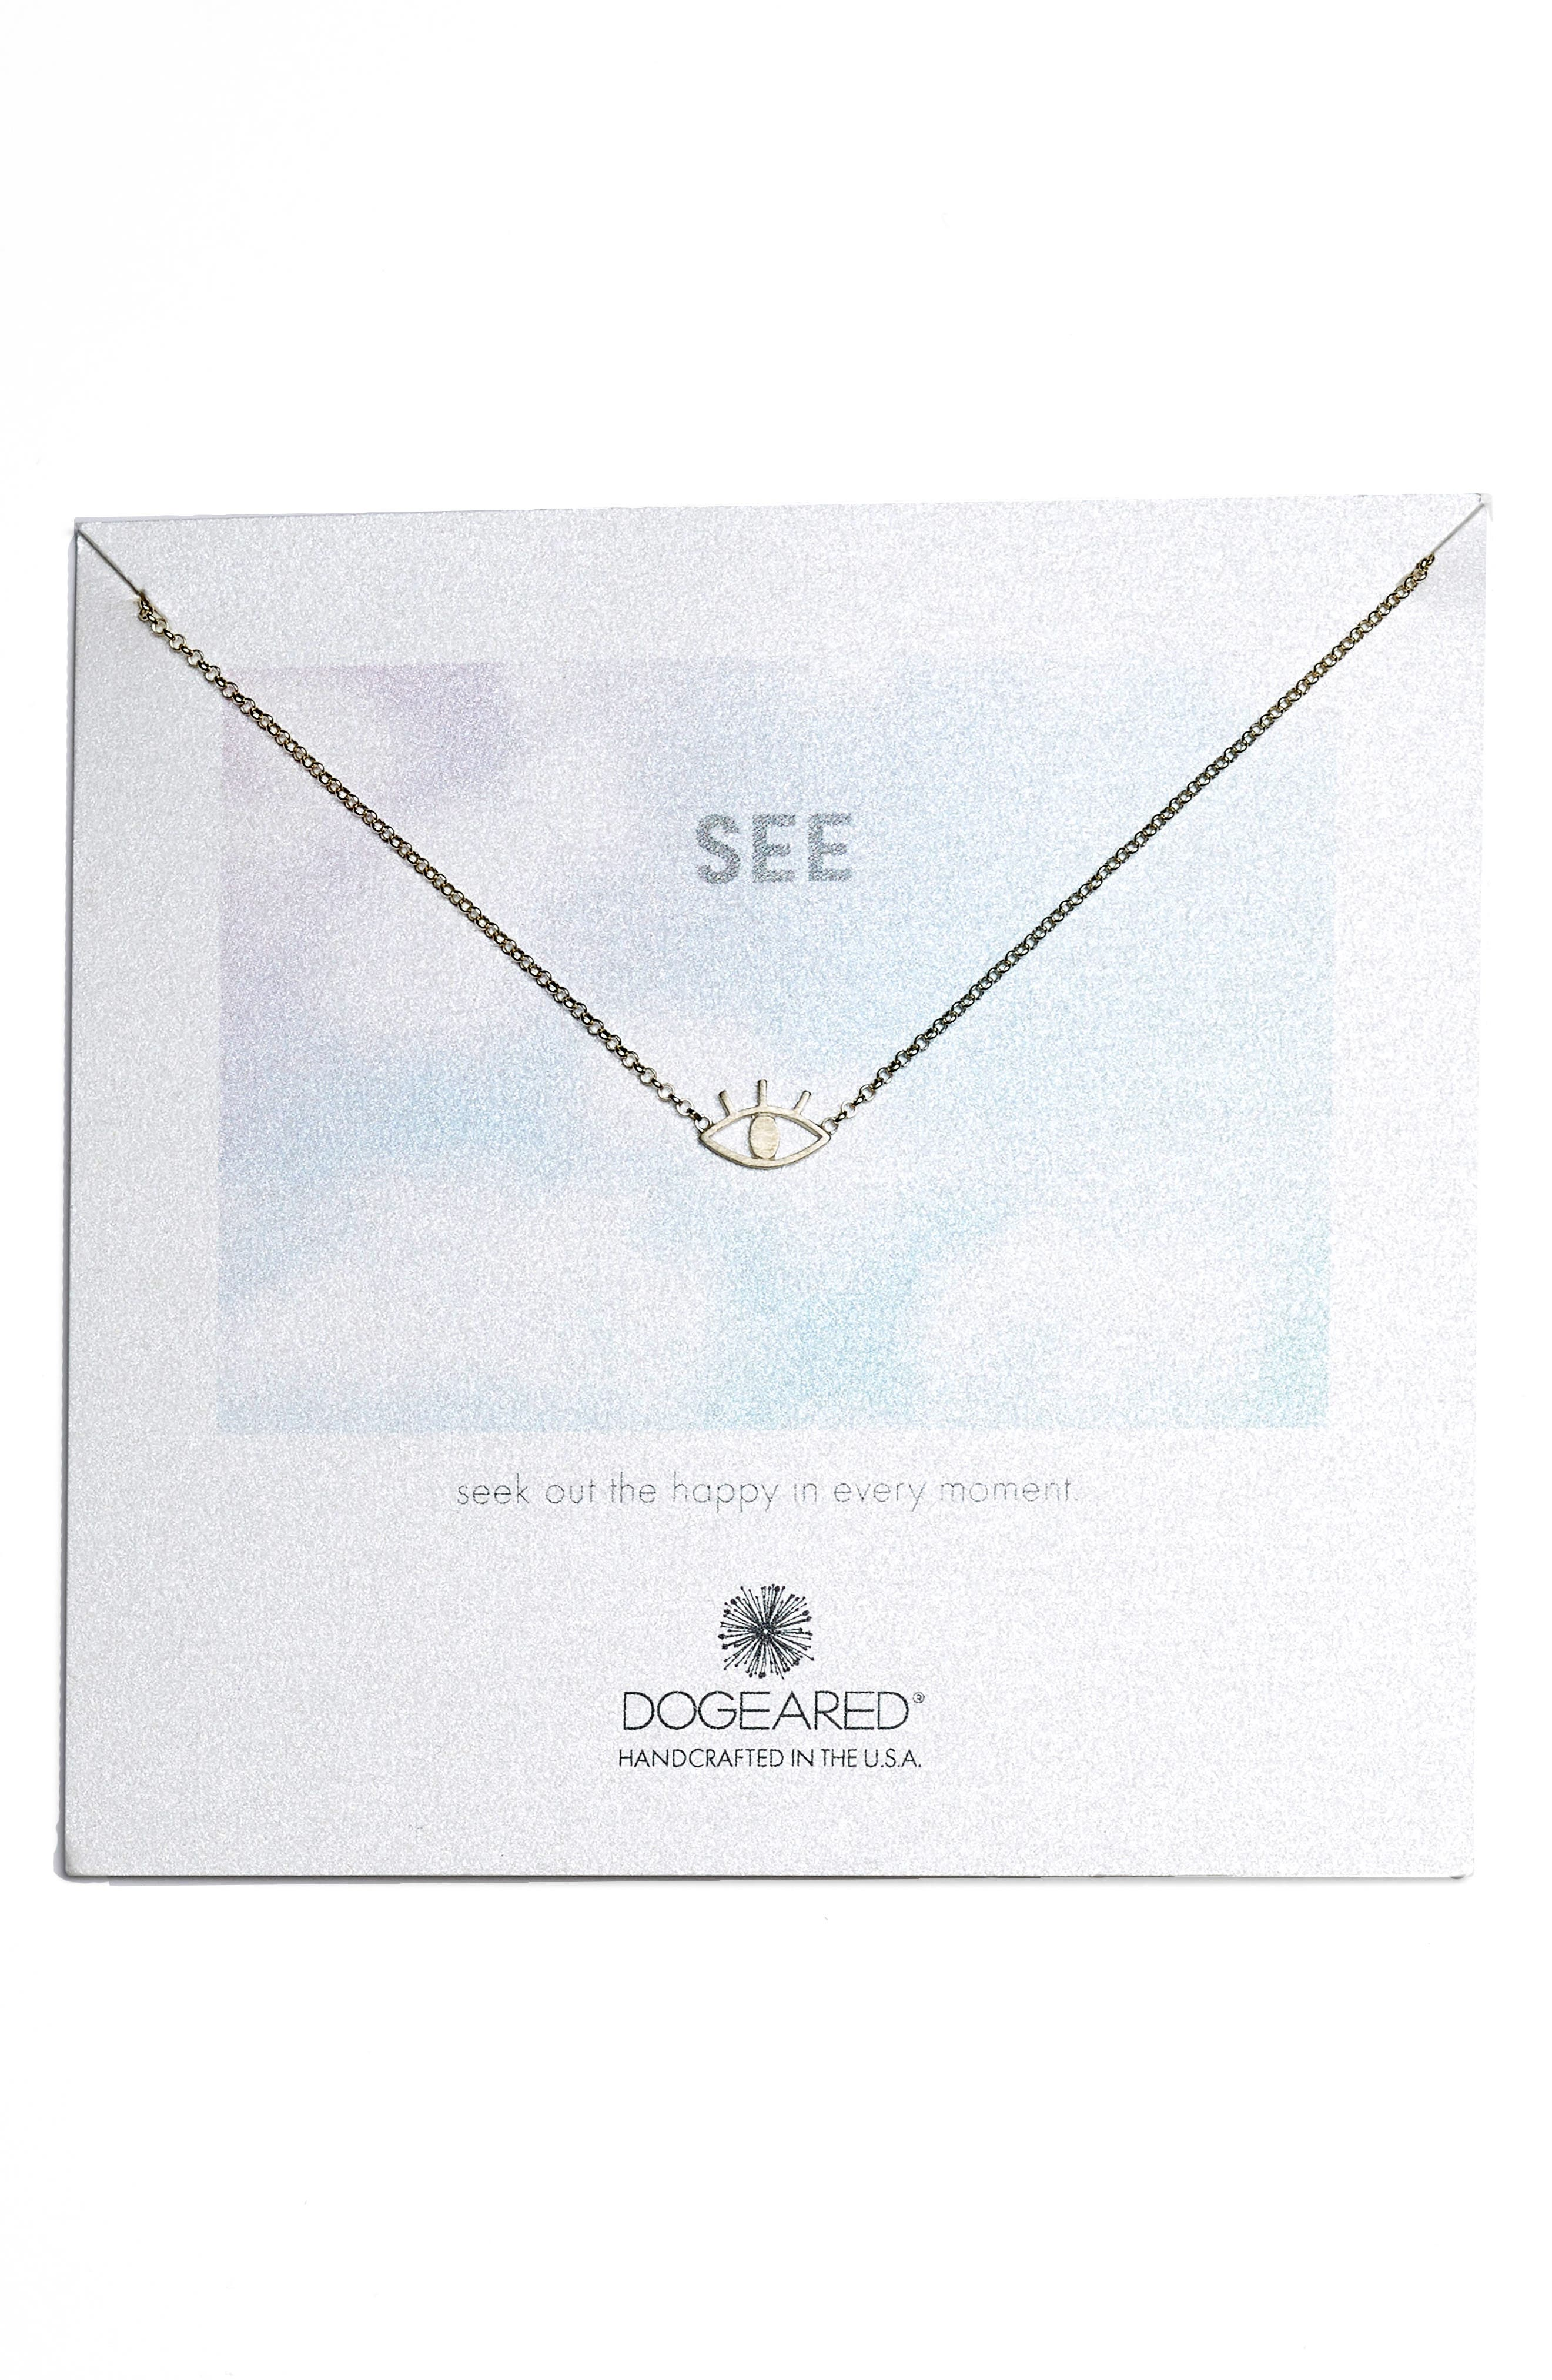 See Open Eye Necklace,                             Main thumbnail 1, color,                             Silver